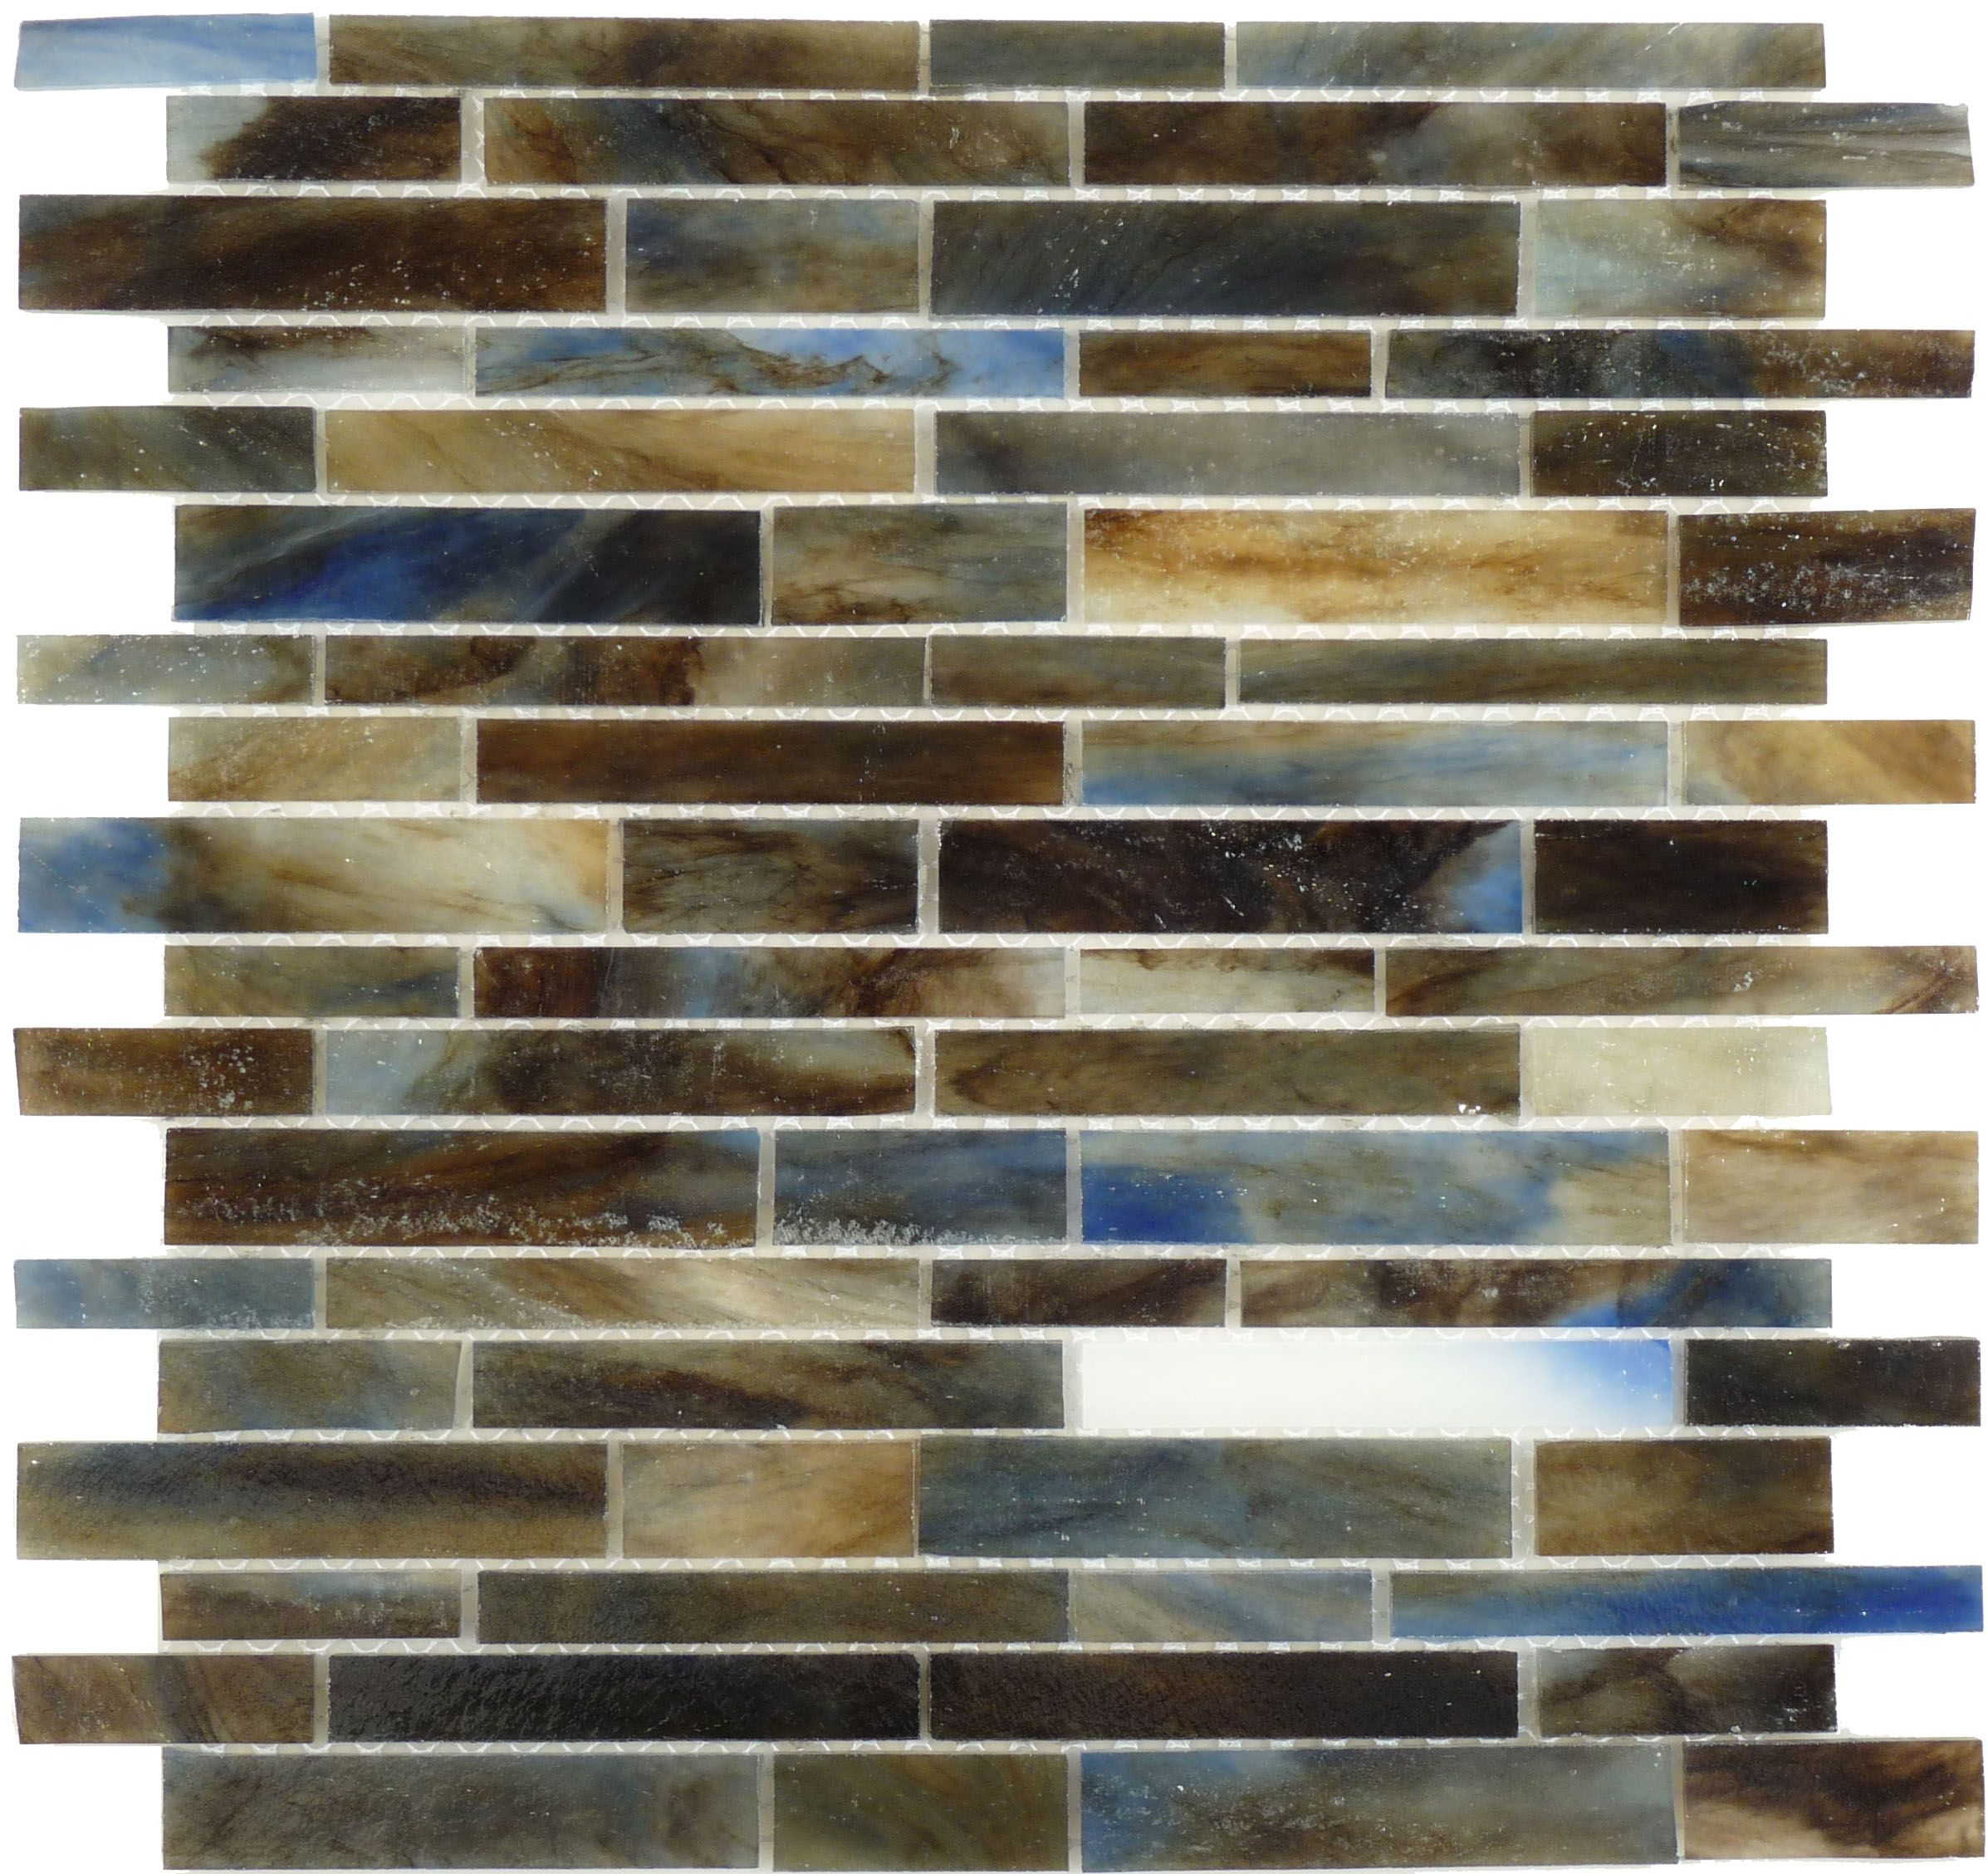 Botanical glass murano vena glass mosaic random bricks brown botanical glass murano vena glass mosaic random bricks brownblue glossy blue backsplashkitchen backsplashglass tilesmosaic dailygadgetfo Images